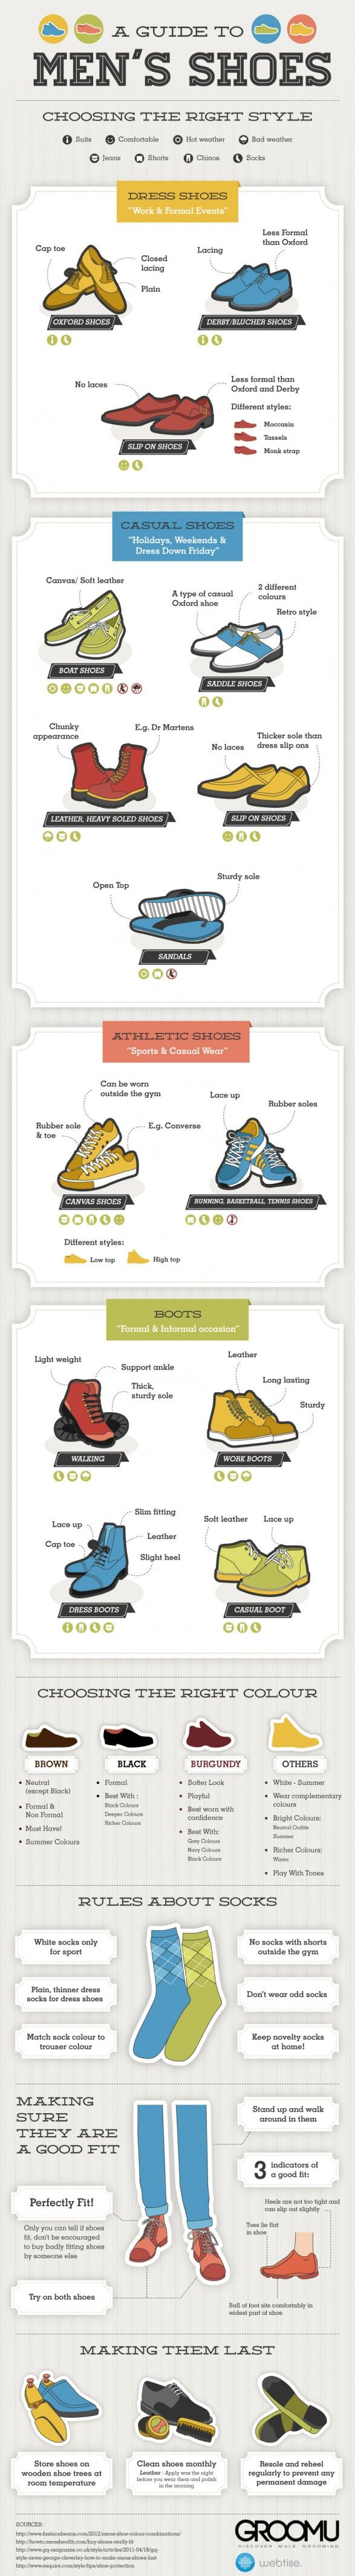 how to classify men dress shoes, men casual shoes, men athletic shoes, men boots. All the shoes you can found at topoutshoes.com